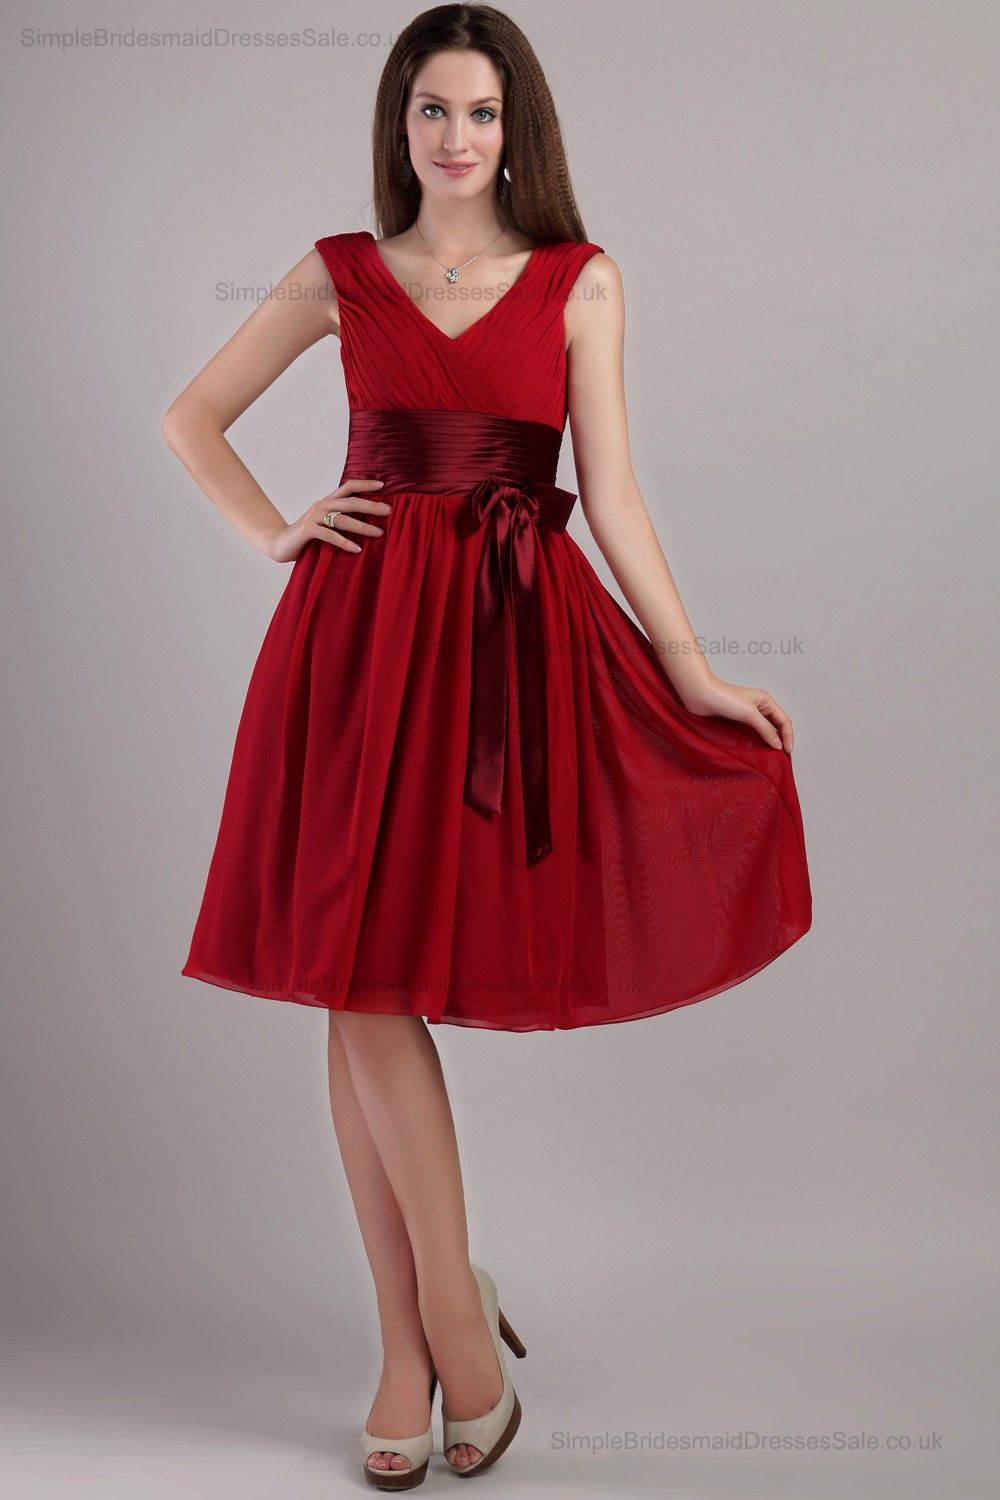 Red bridesmaid dresses uk bridesmaid dresses pinterest red red bridesmaid dresses uk ombrellifo Image collections